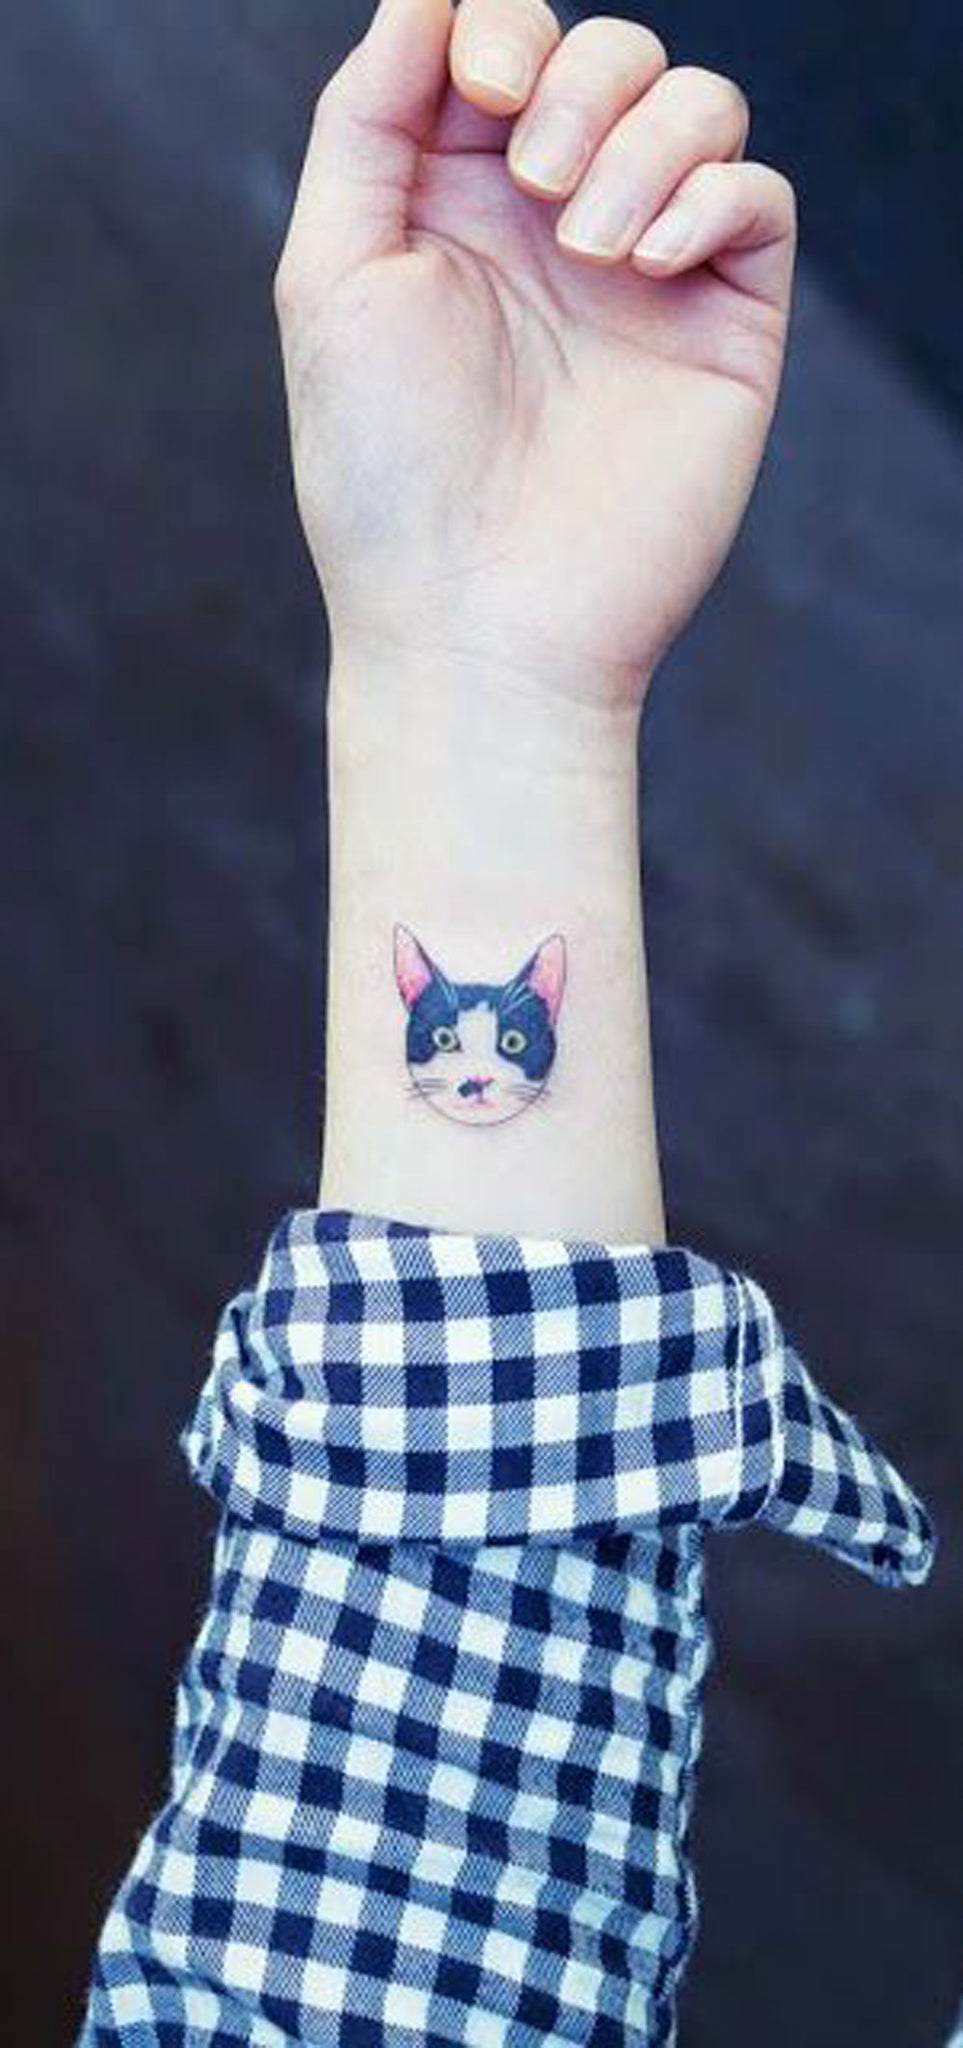 Realistic Traditional Black and White Wrist Tattoo Ideas for Women - Cute Kitty Inner Arm Tat - www.MyBodiArt.com